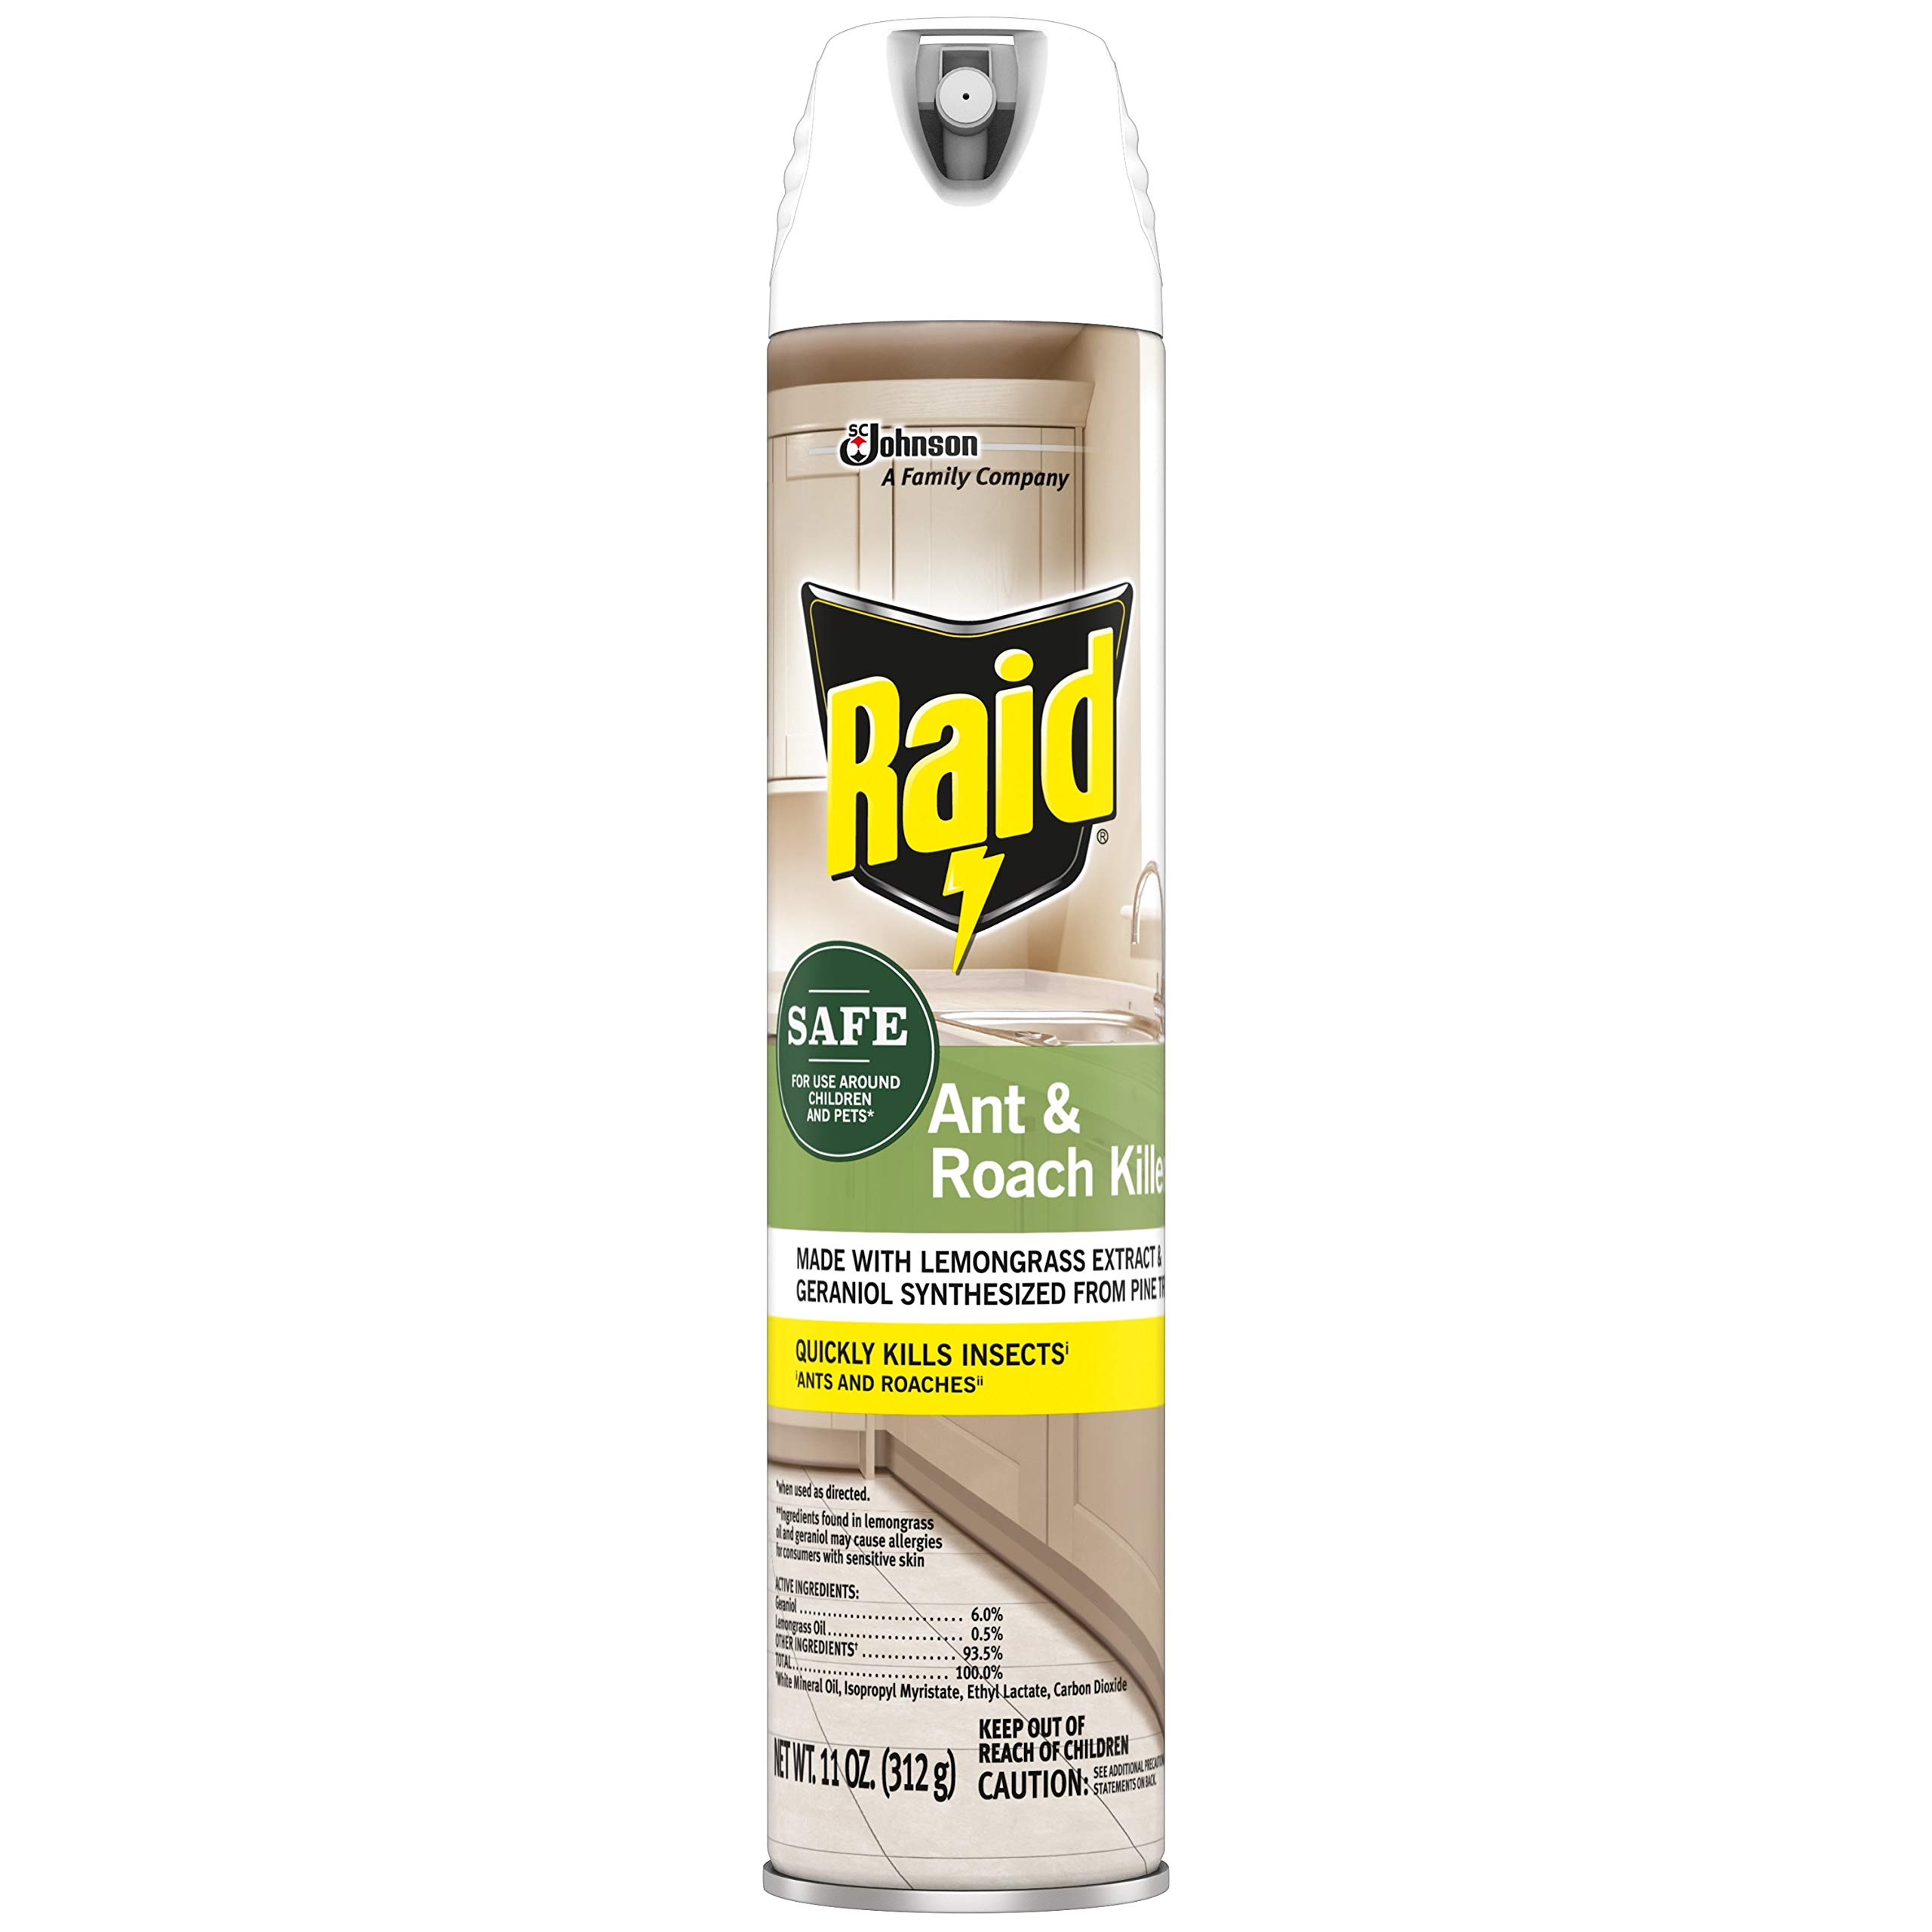 Raid Ant & Roach Killer Spray for Listed Bugs, Insect, Spider, For Indoor Use, Essential Oils, Child & Pet Safe, 11 Oz, Pack of 1